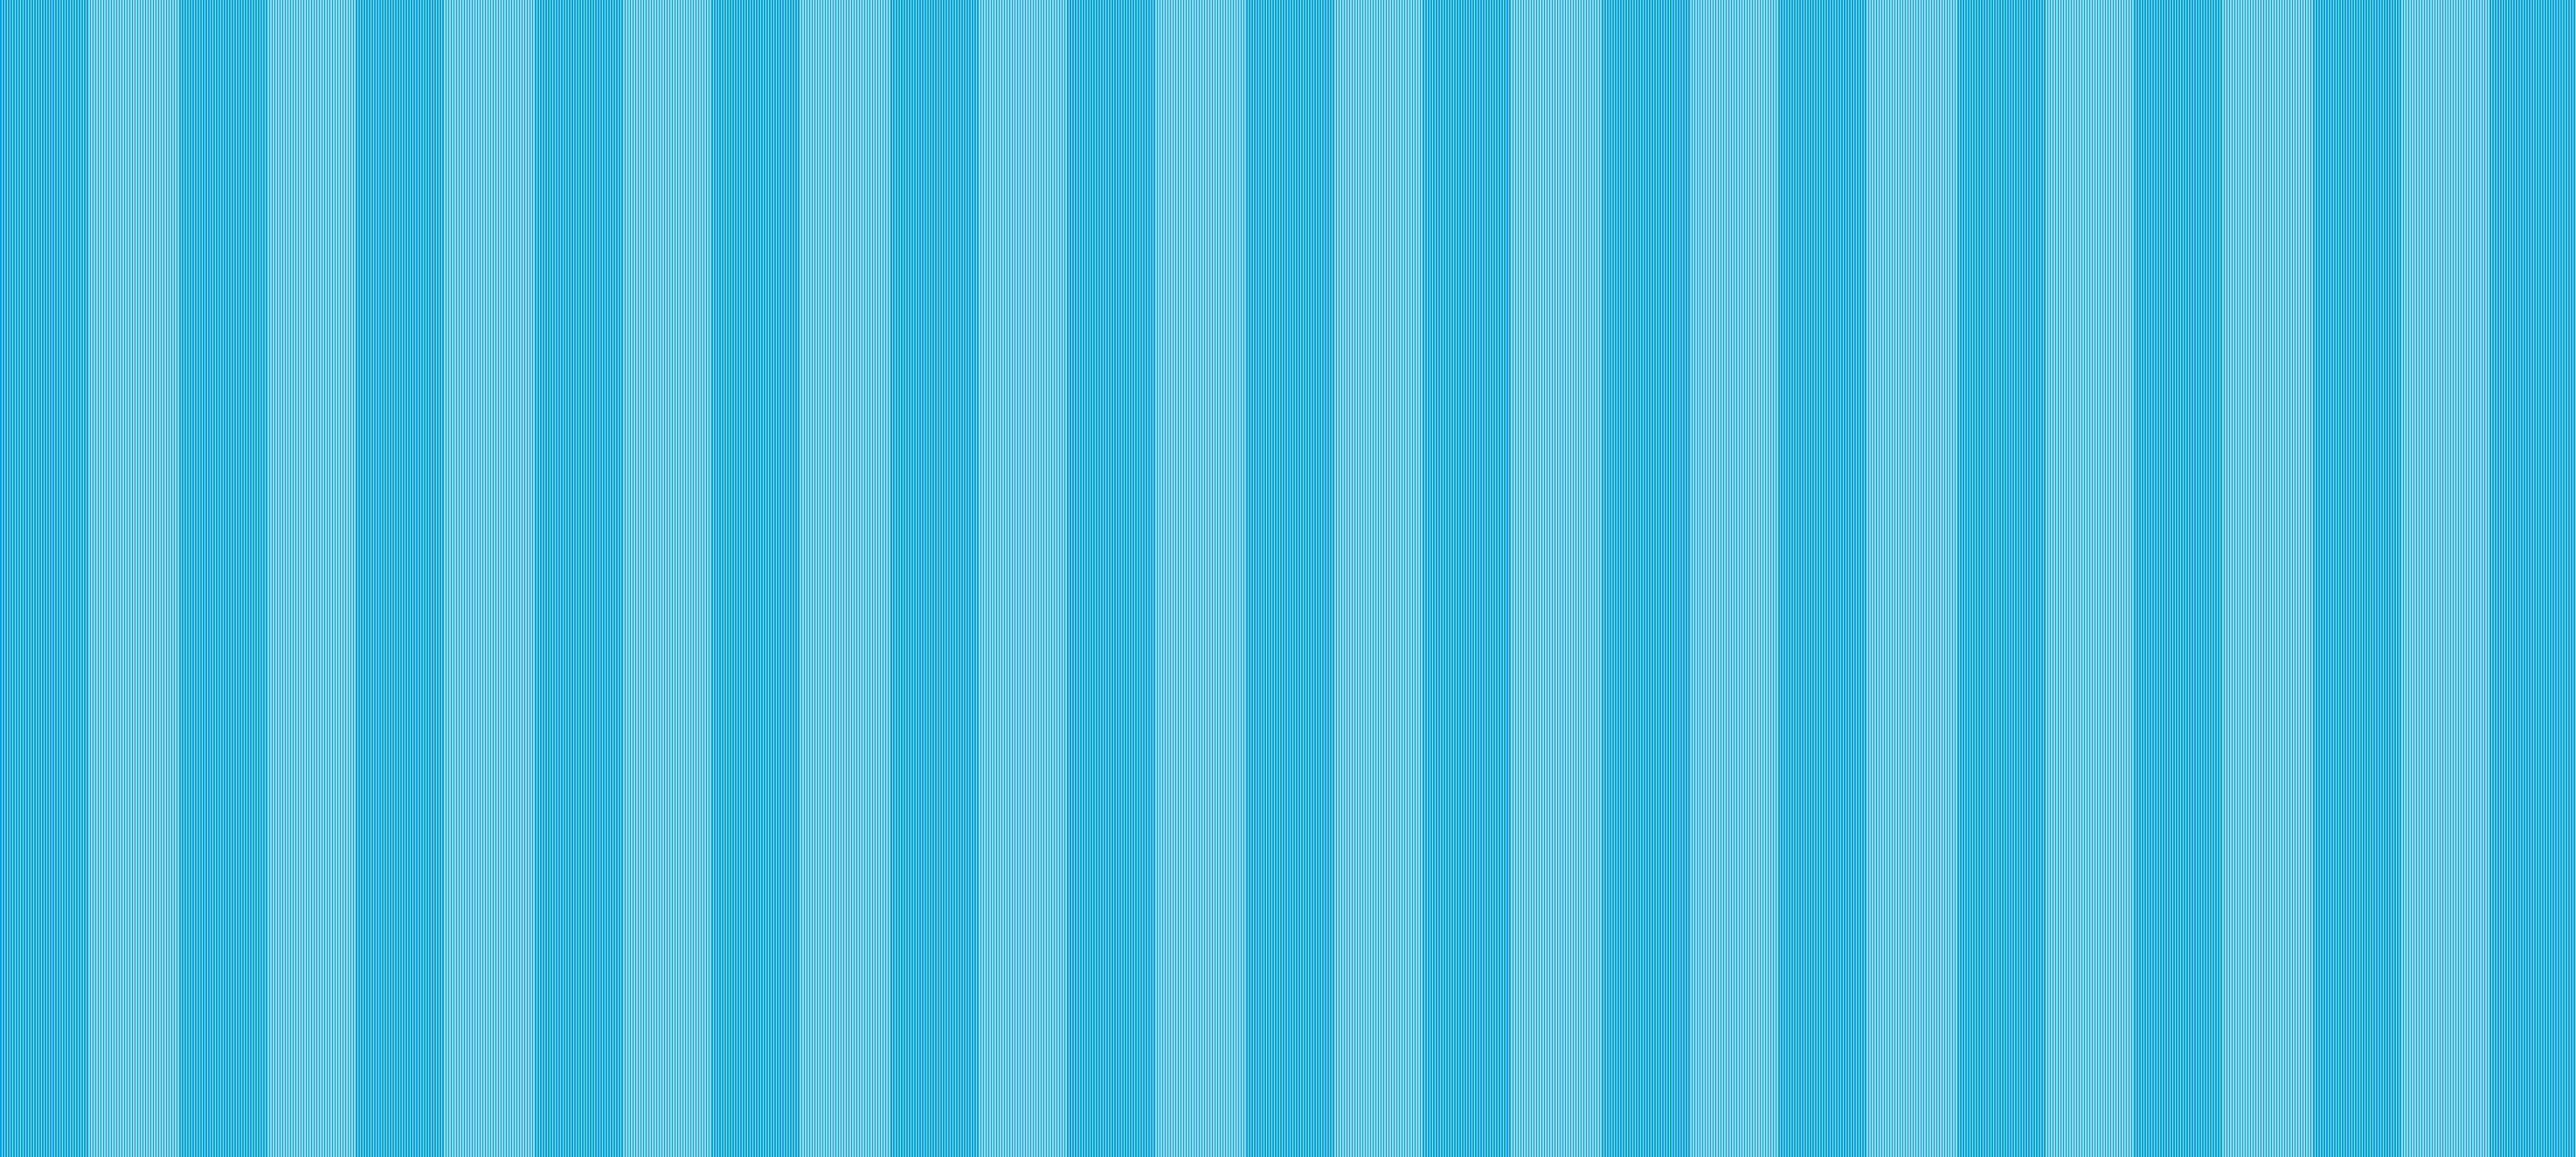 Blue Striped Wallpaper: Stripes Background ·① Download Free Cool Full HD